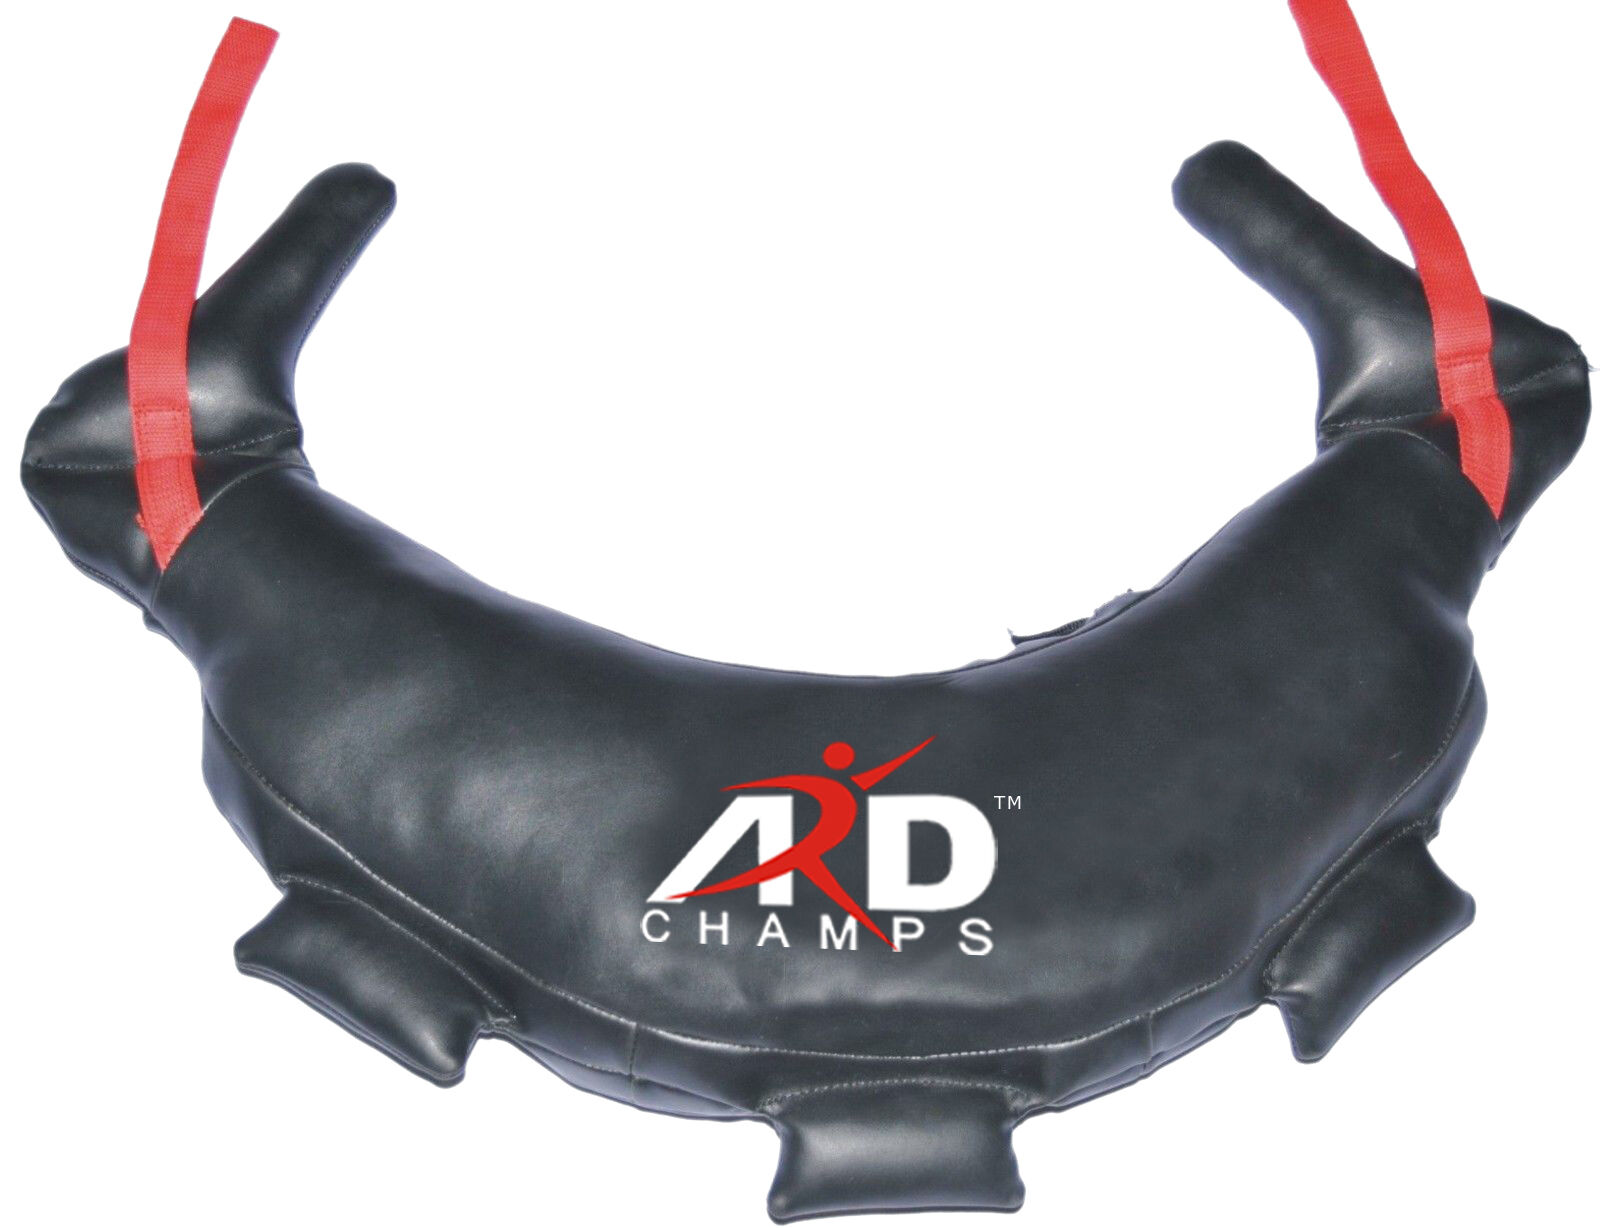 ARD CHAMPS™ FITNESS GYM TRAINING STRENGTH BAG 5 TO 28 KG BULGARIAN